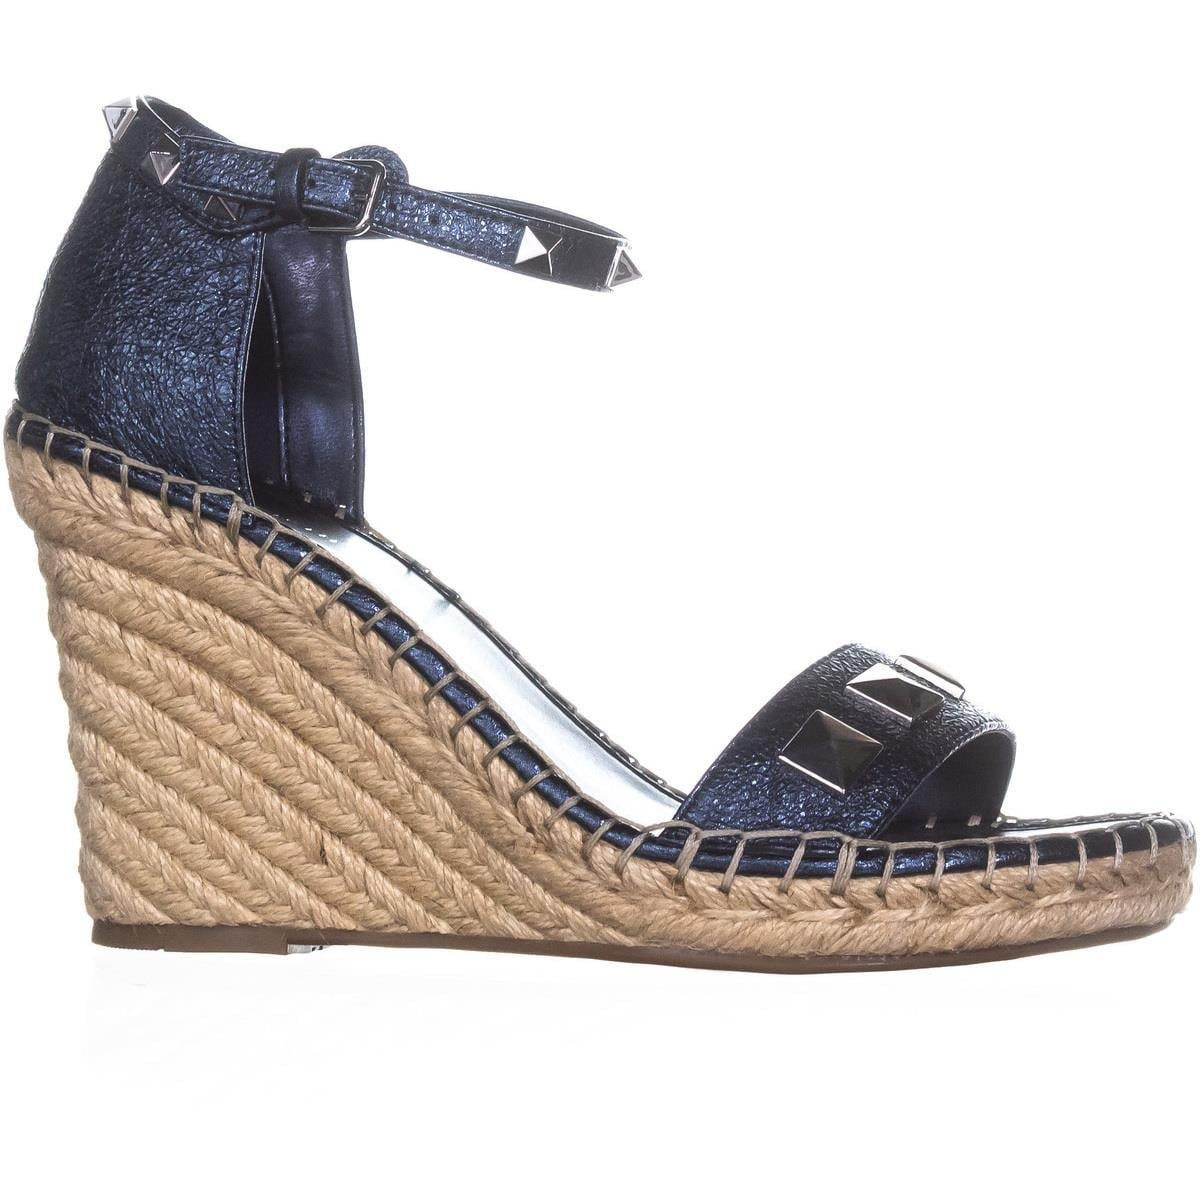 bb43f315e7d Shop Marc Fisher Knoll Studded Wedge Sandals